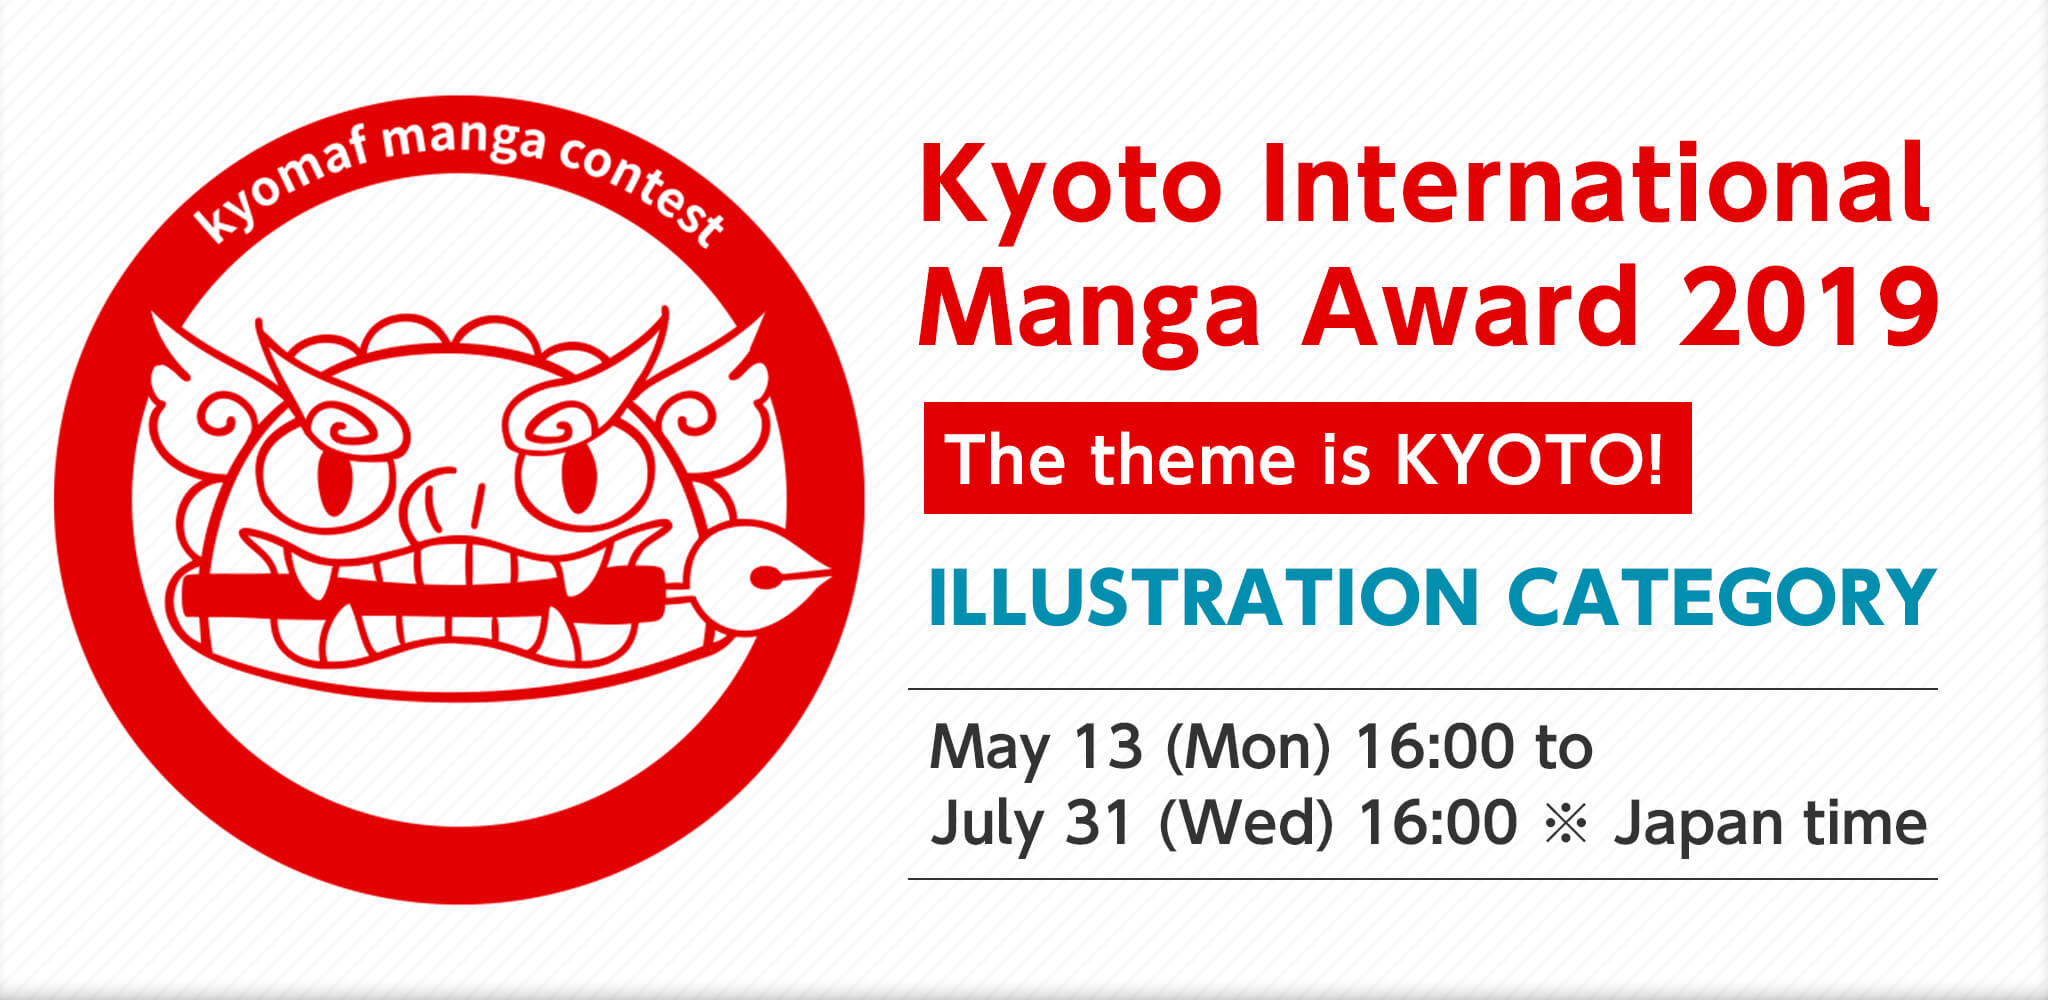 Kyoto International Manga Awards 2019 Illustration Category | Contest - ART street by MediBang